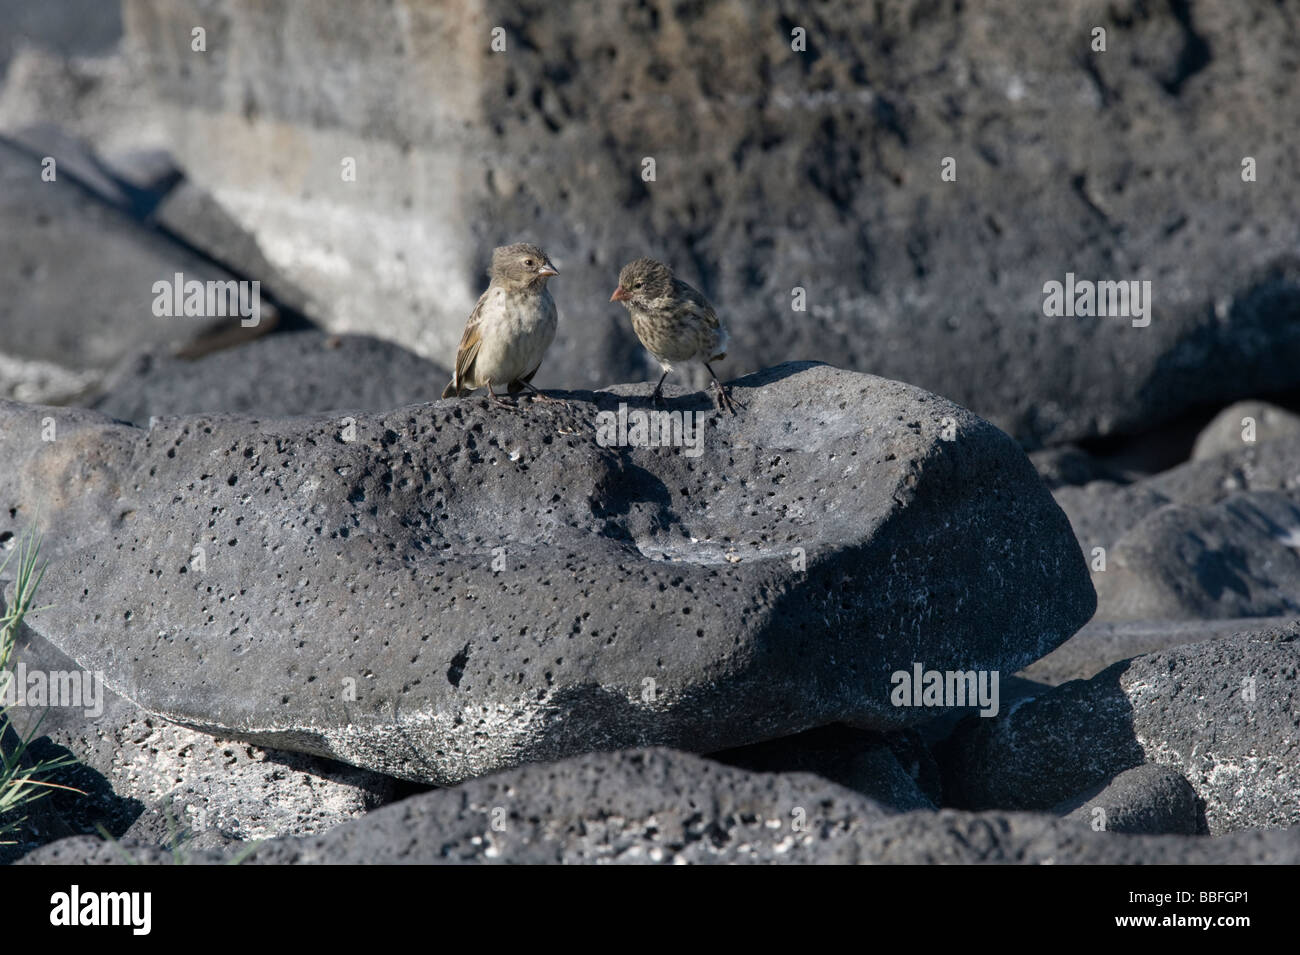 Sharp-beaked Ground-Finch (Geospiza difficilis) Gardner Bay Espanola Hood Galapagos Ecuador Pacific Ocean South - Stock Image